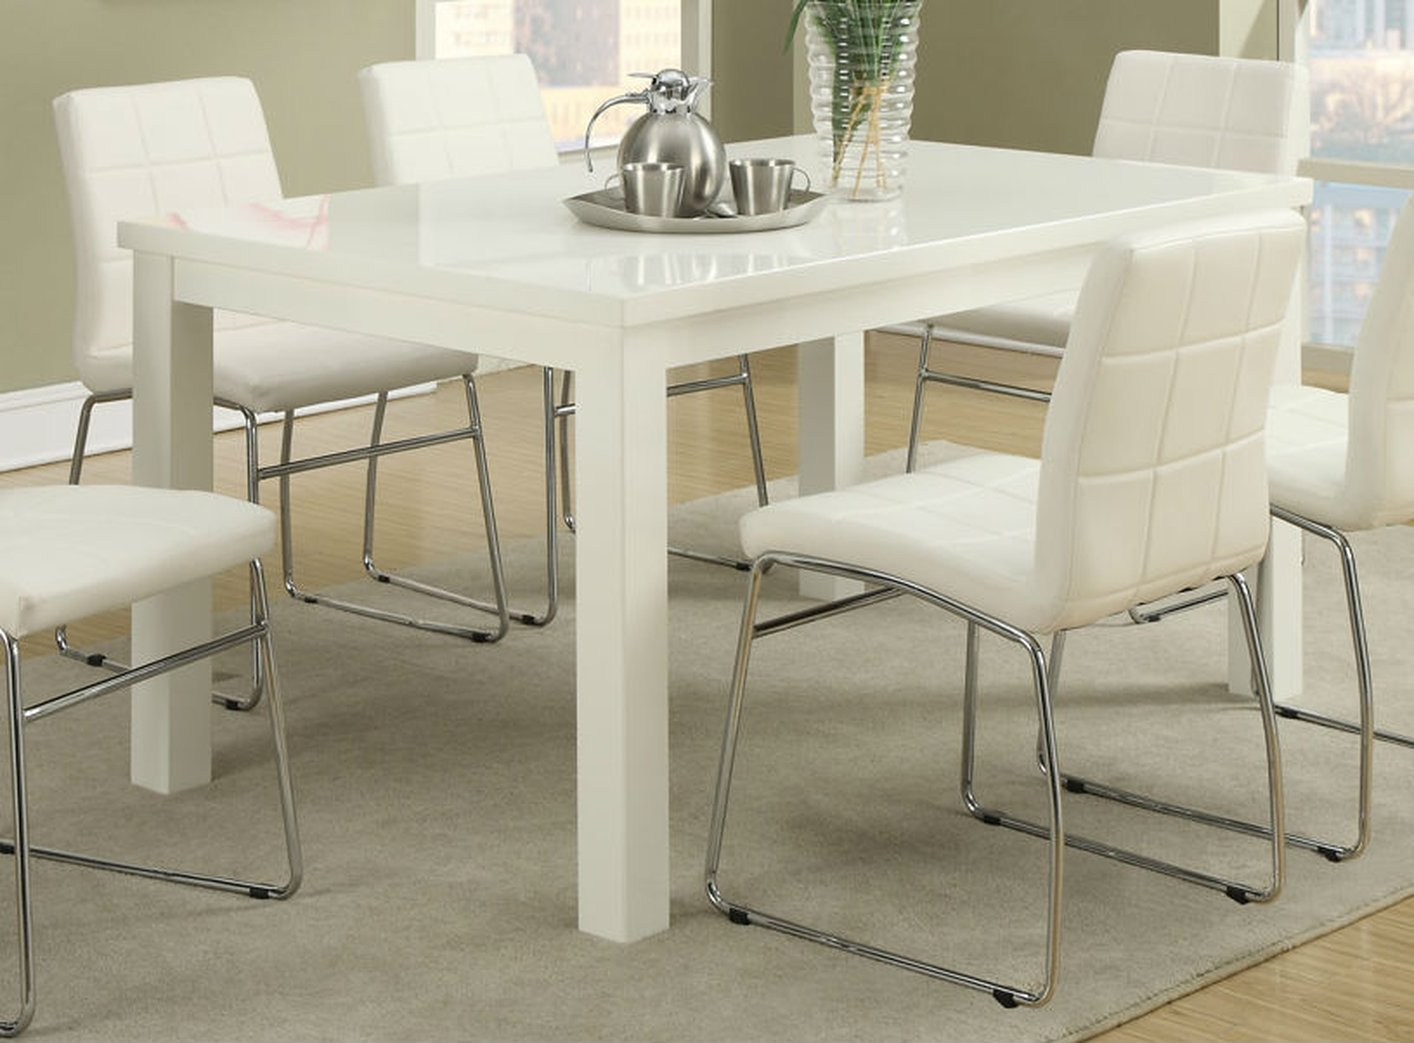 Poundex F2407 White Wood Dining Table Steal A Sofa Furniture